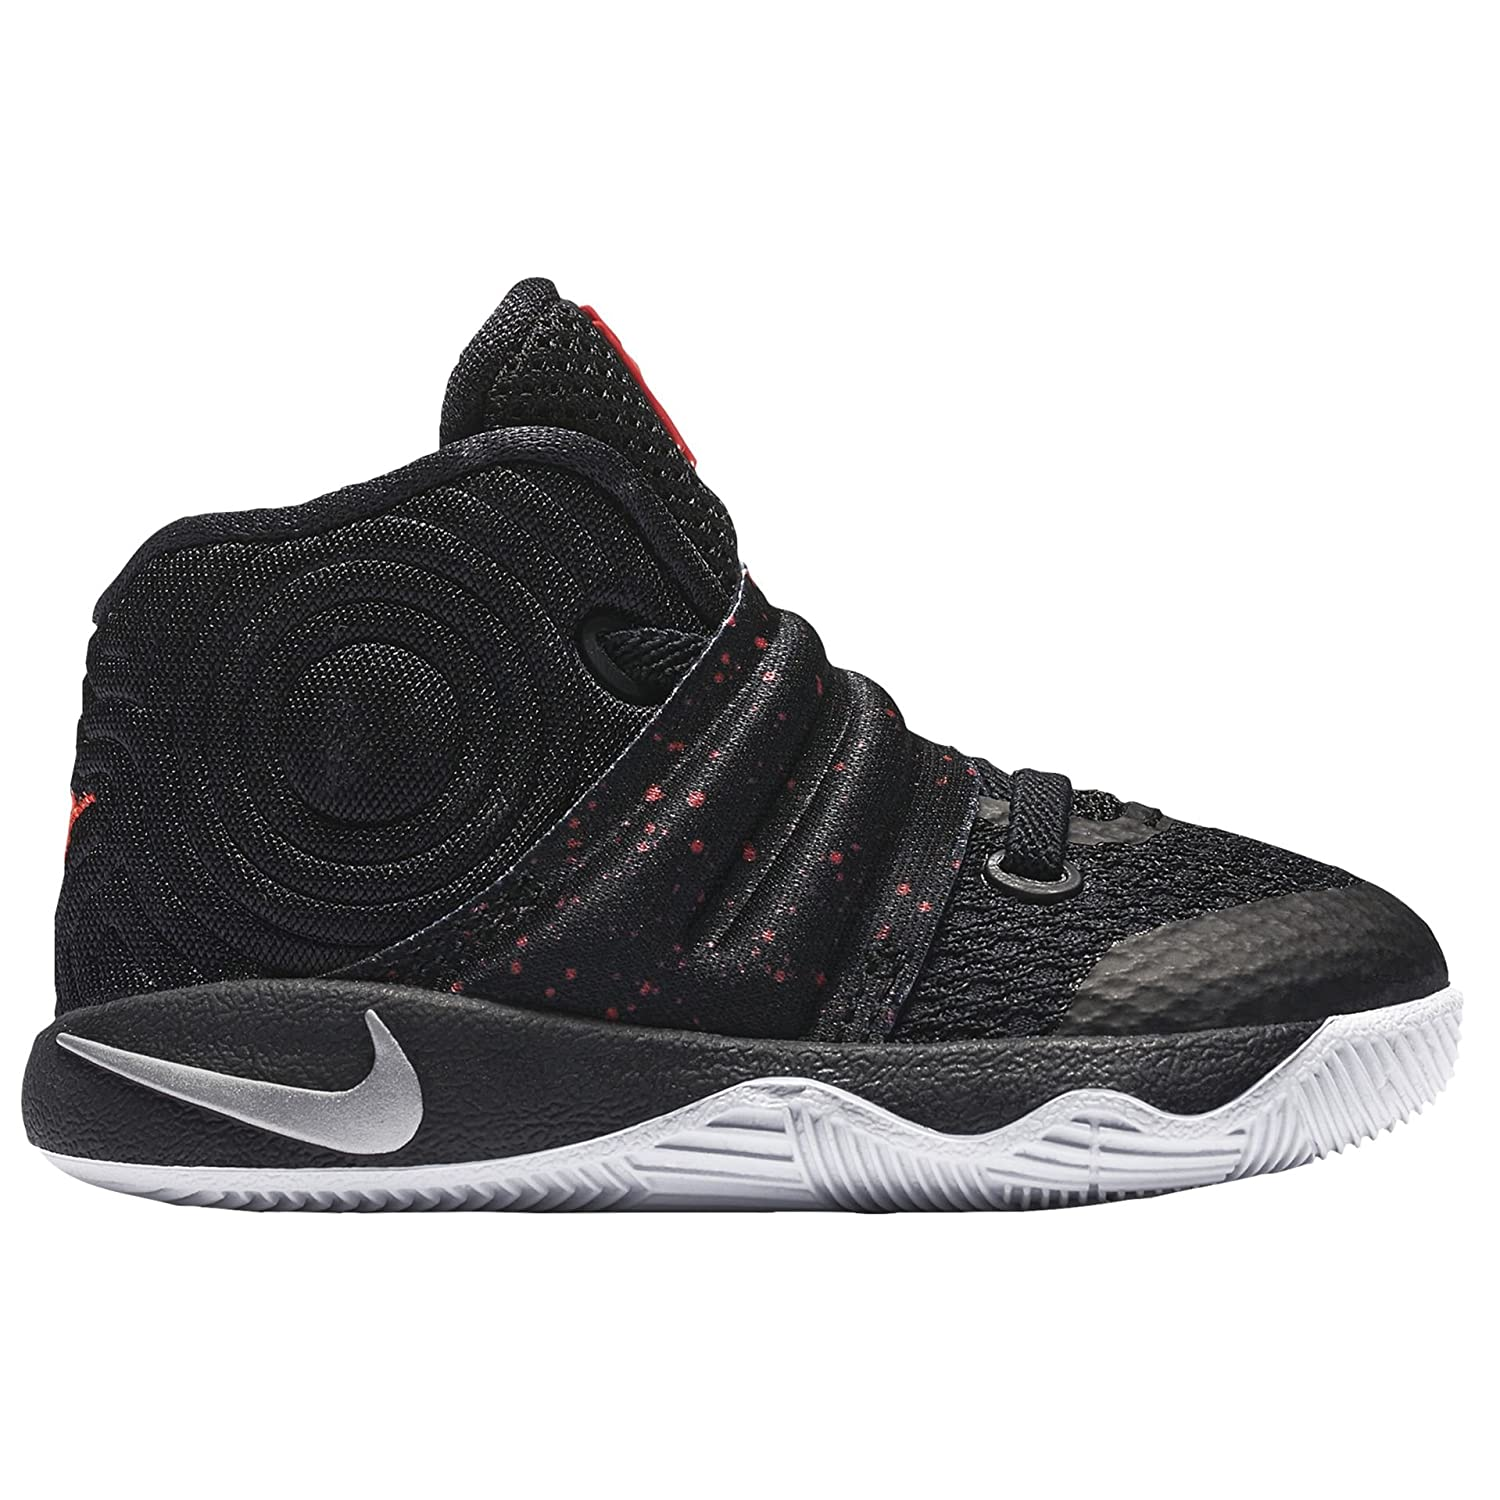 reputable site 9fda6 b48bc Amazon.com   NIKE Toddler s Kyrie 2 (TD) Speckles Edition Basketball Shoes  2C Black Red   Sneakers